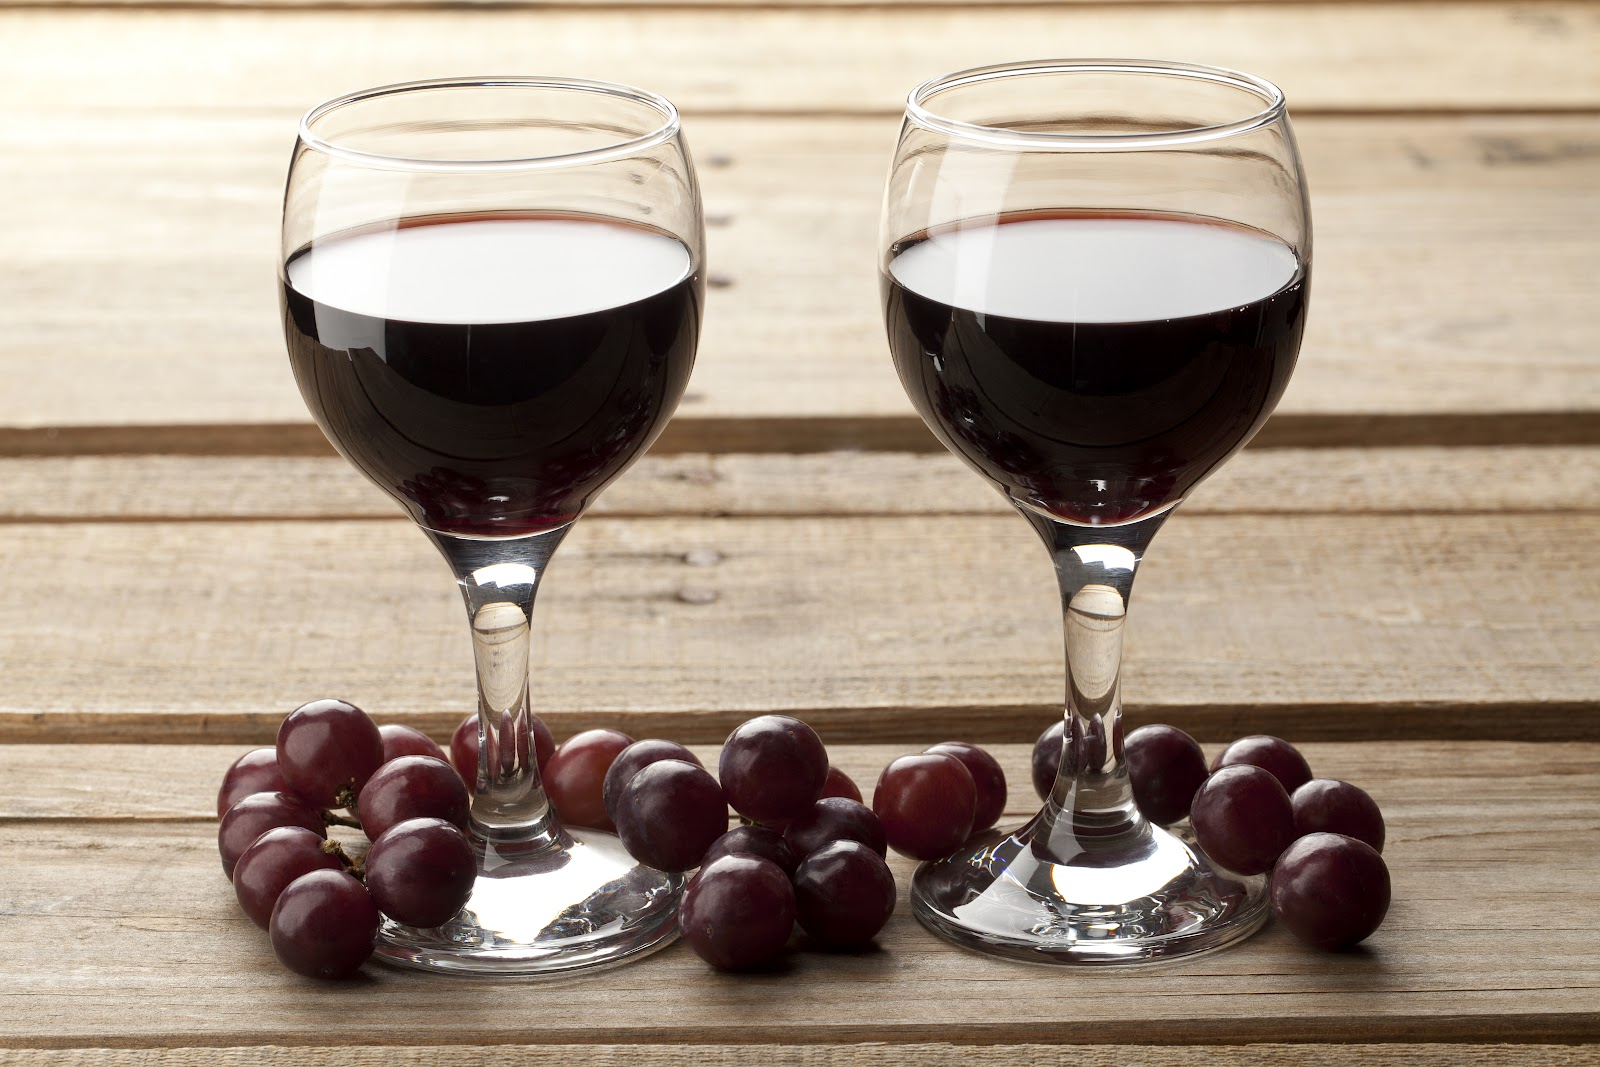 Image of pair of red wine with grapes place on wooden table